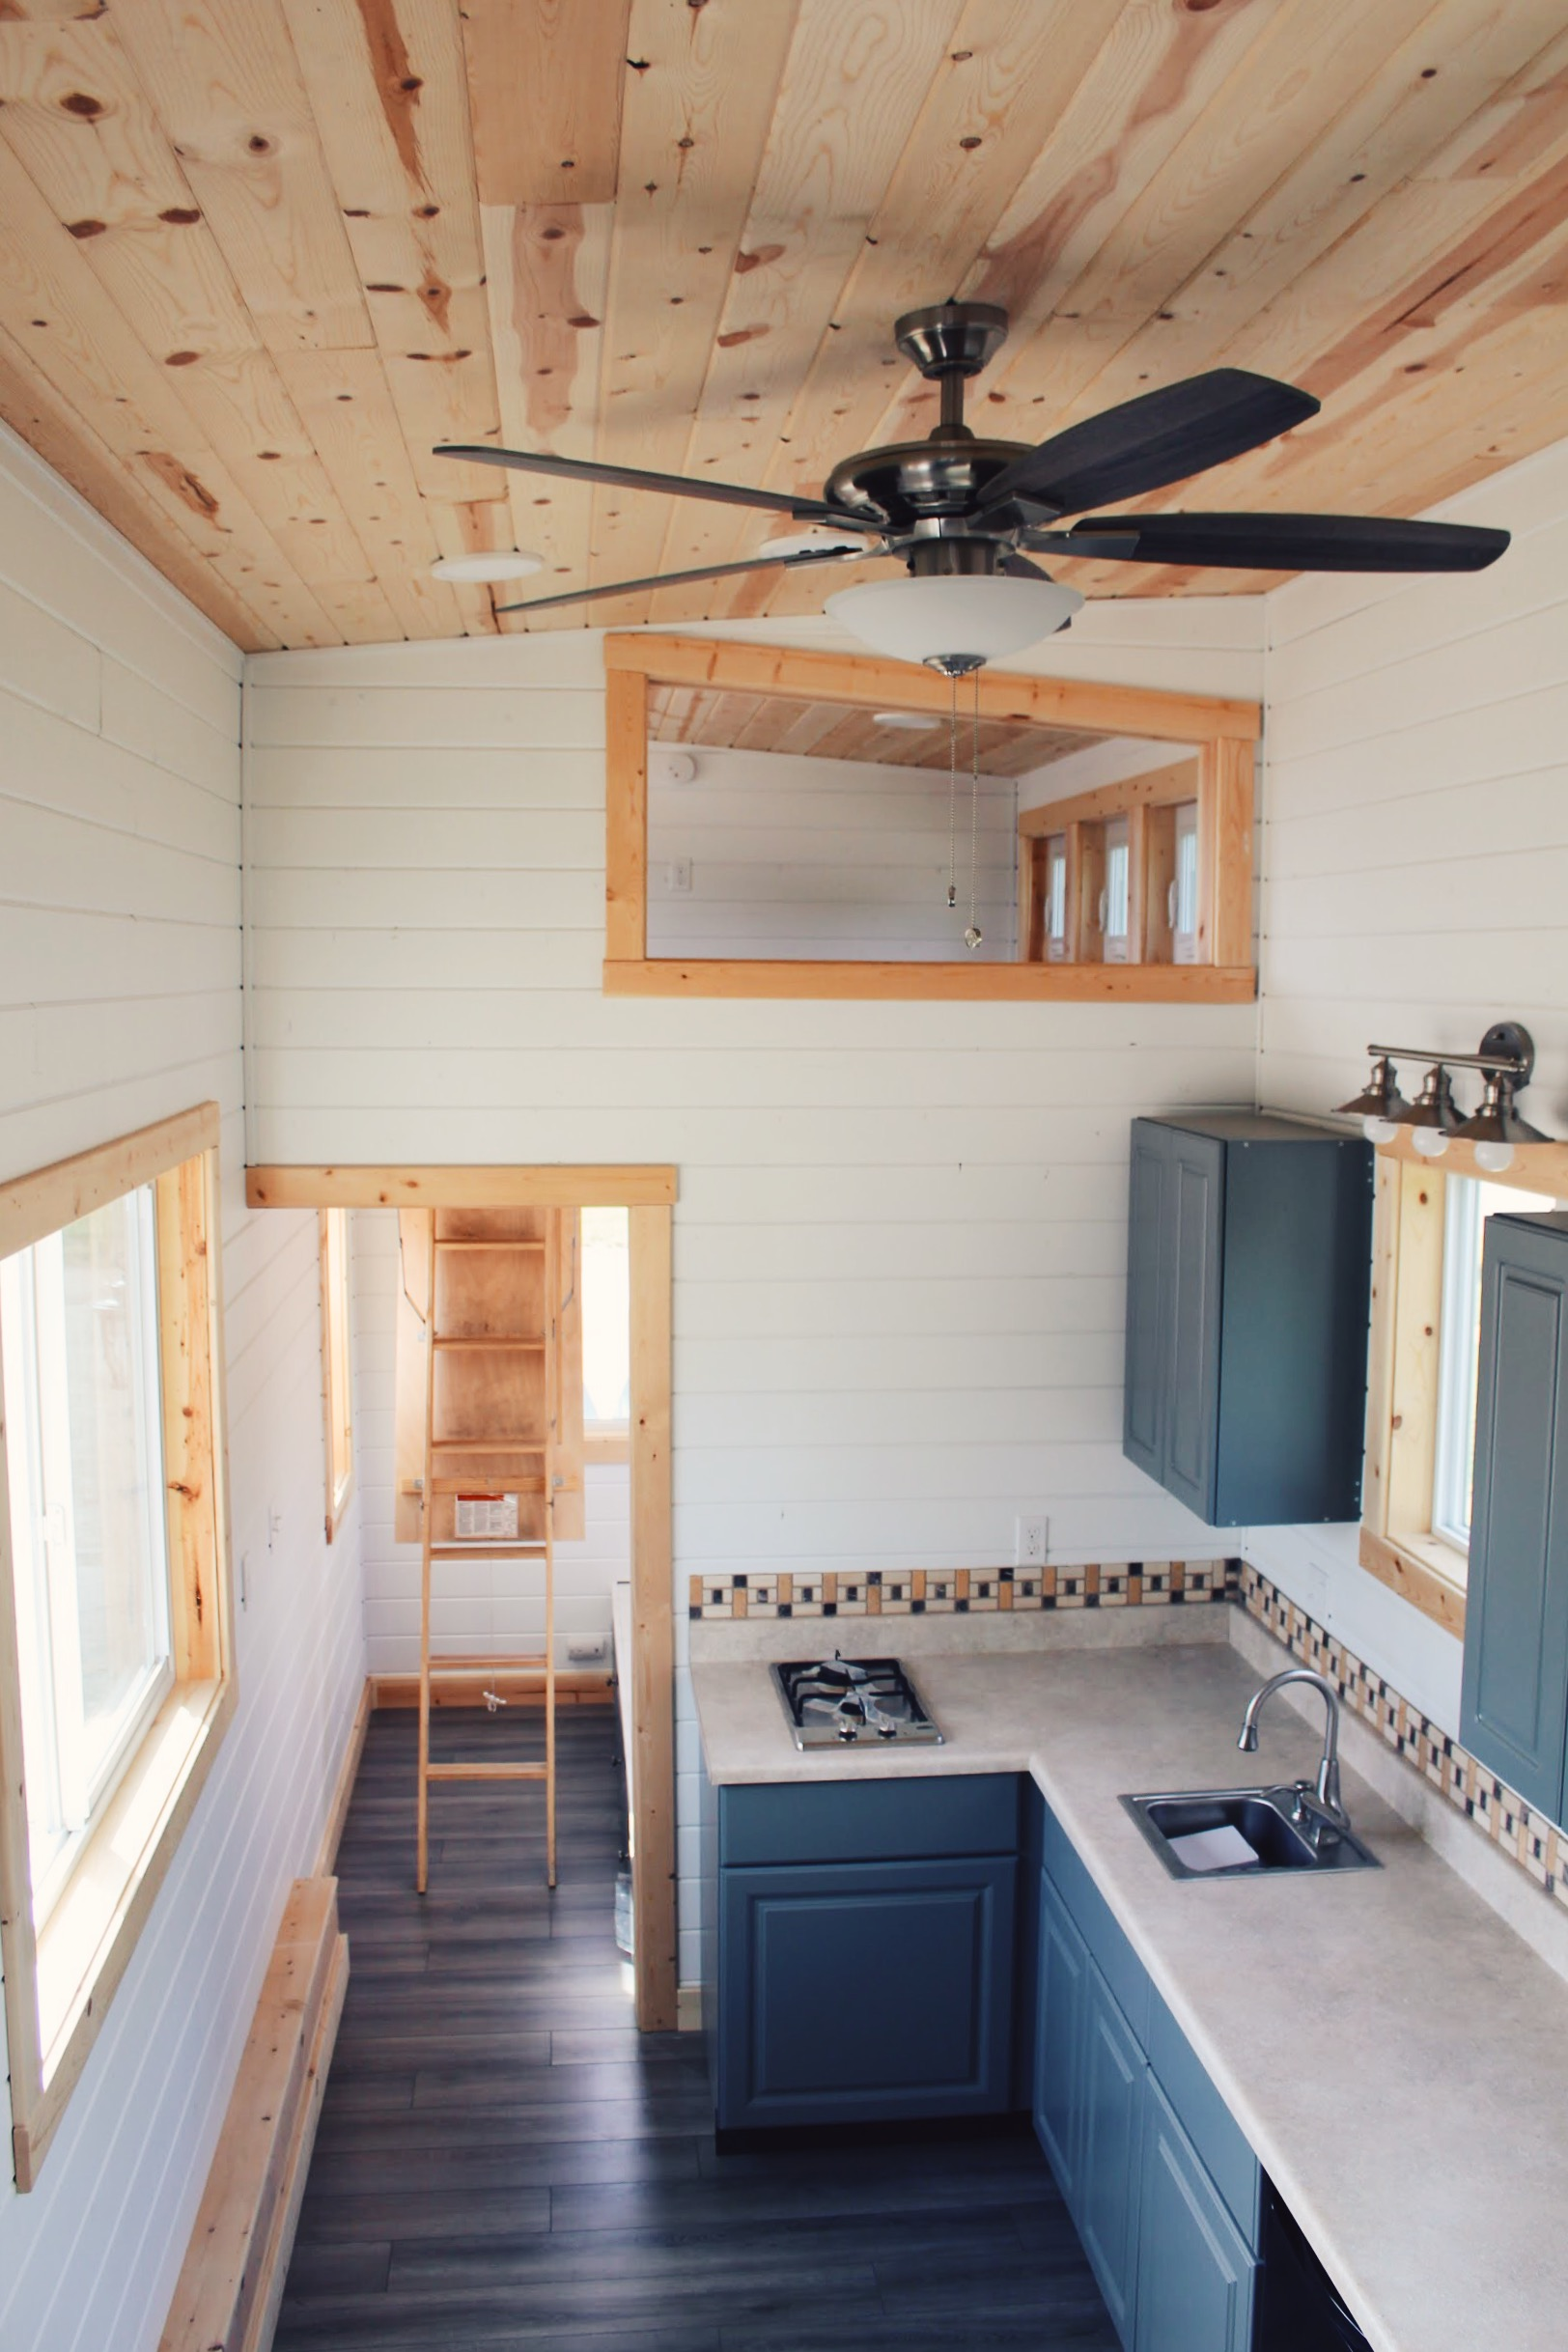 Project Tiny House 2018 - Final - 11.jpg